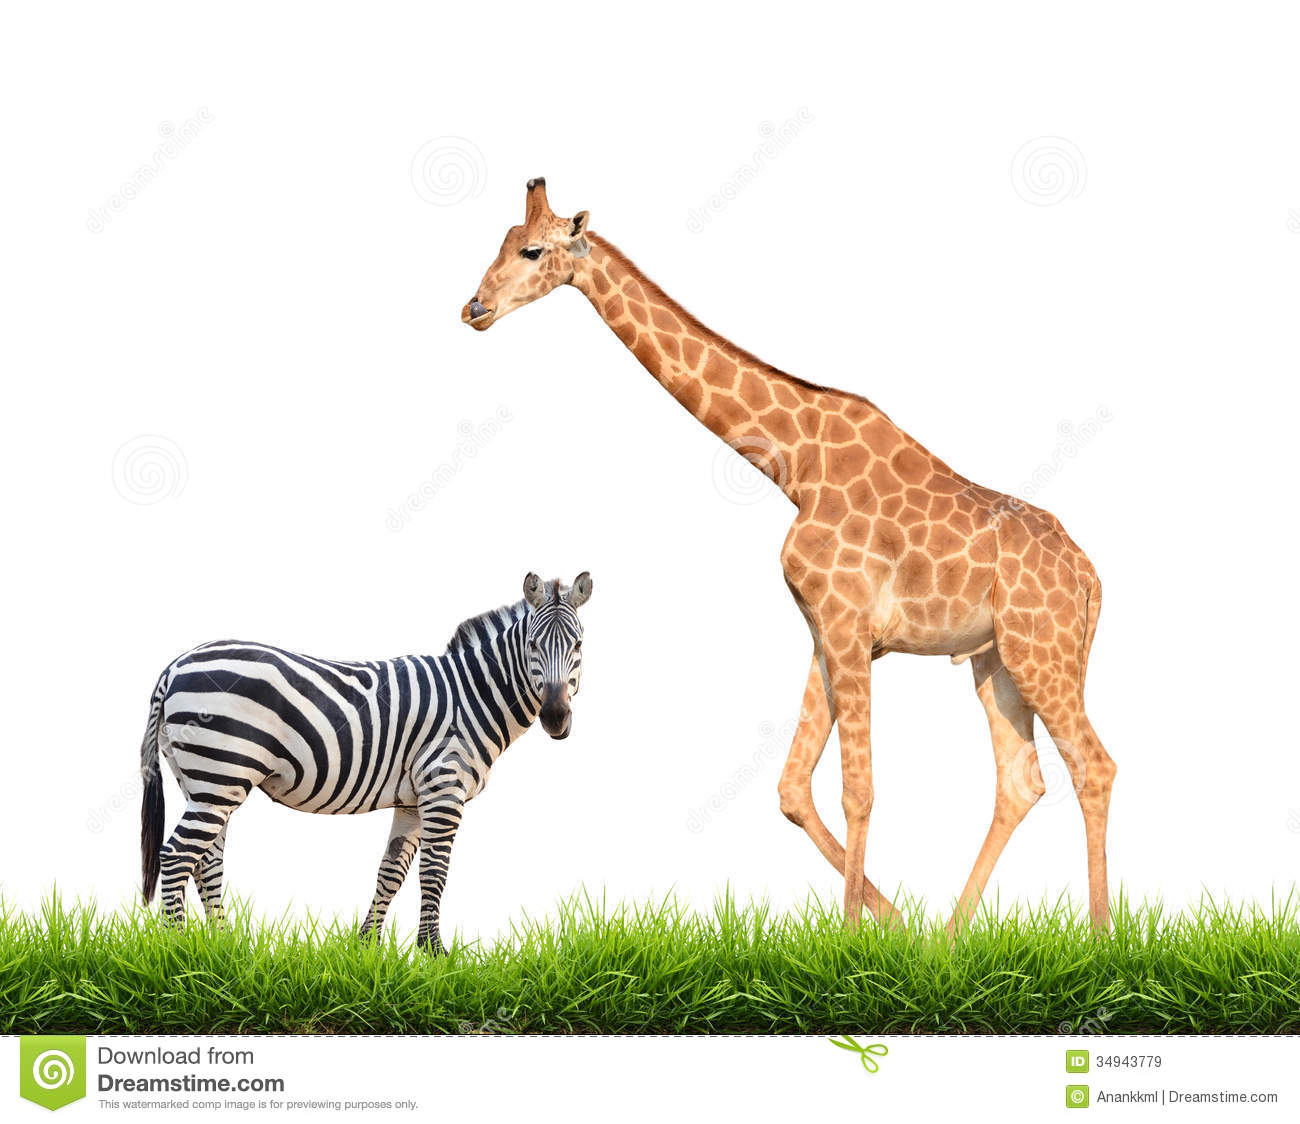 zebras and giraffes - photo #35